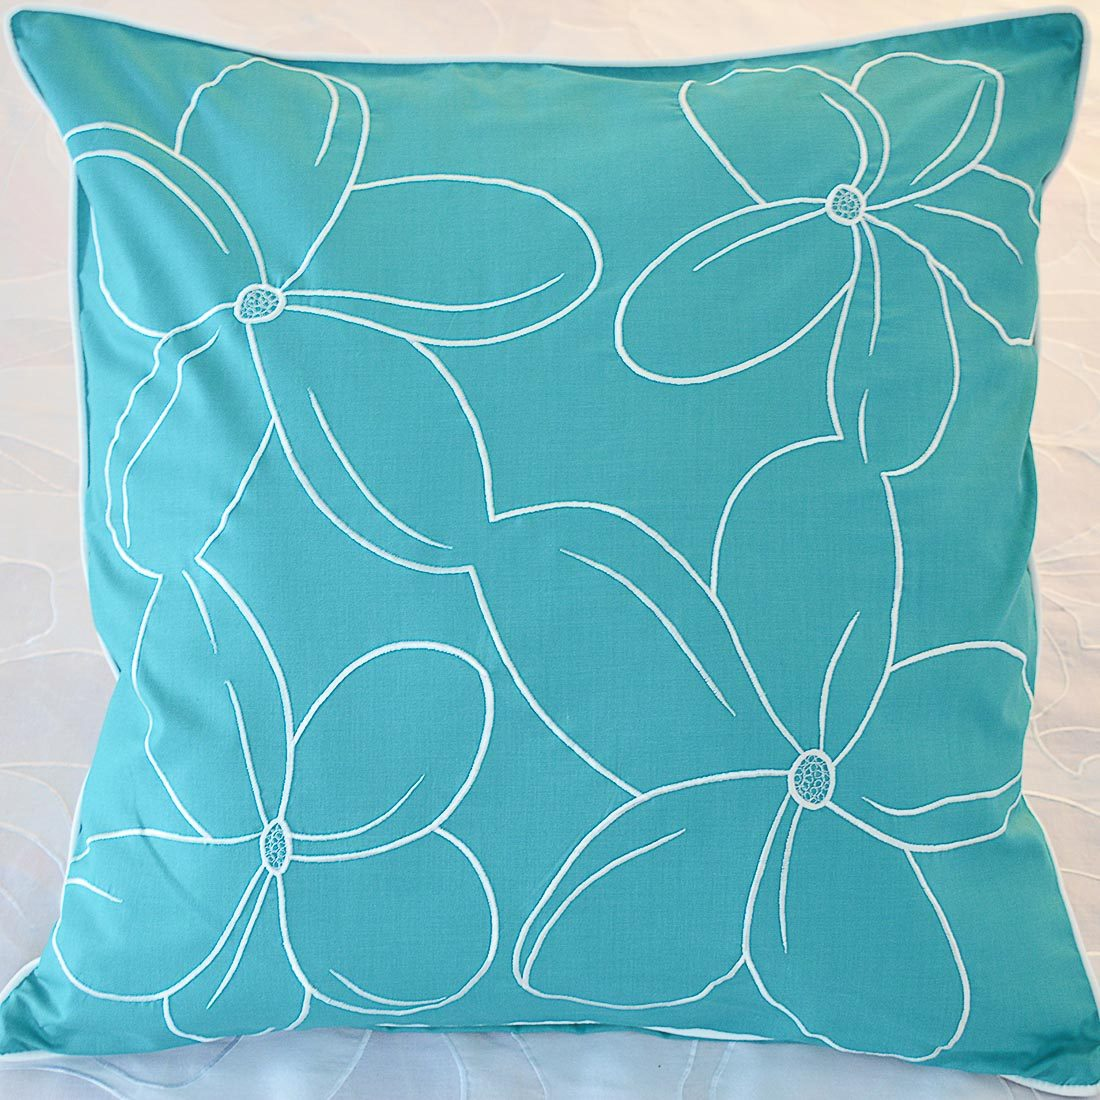 Cushions Embroidery Hina